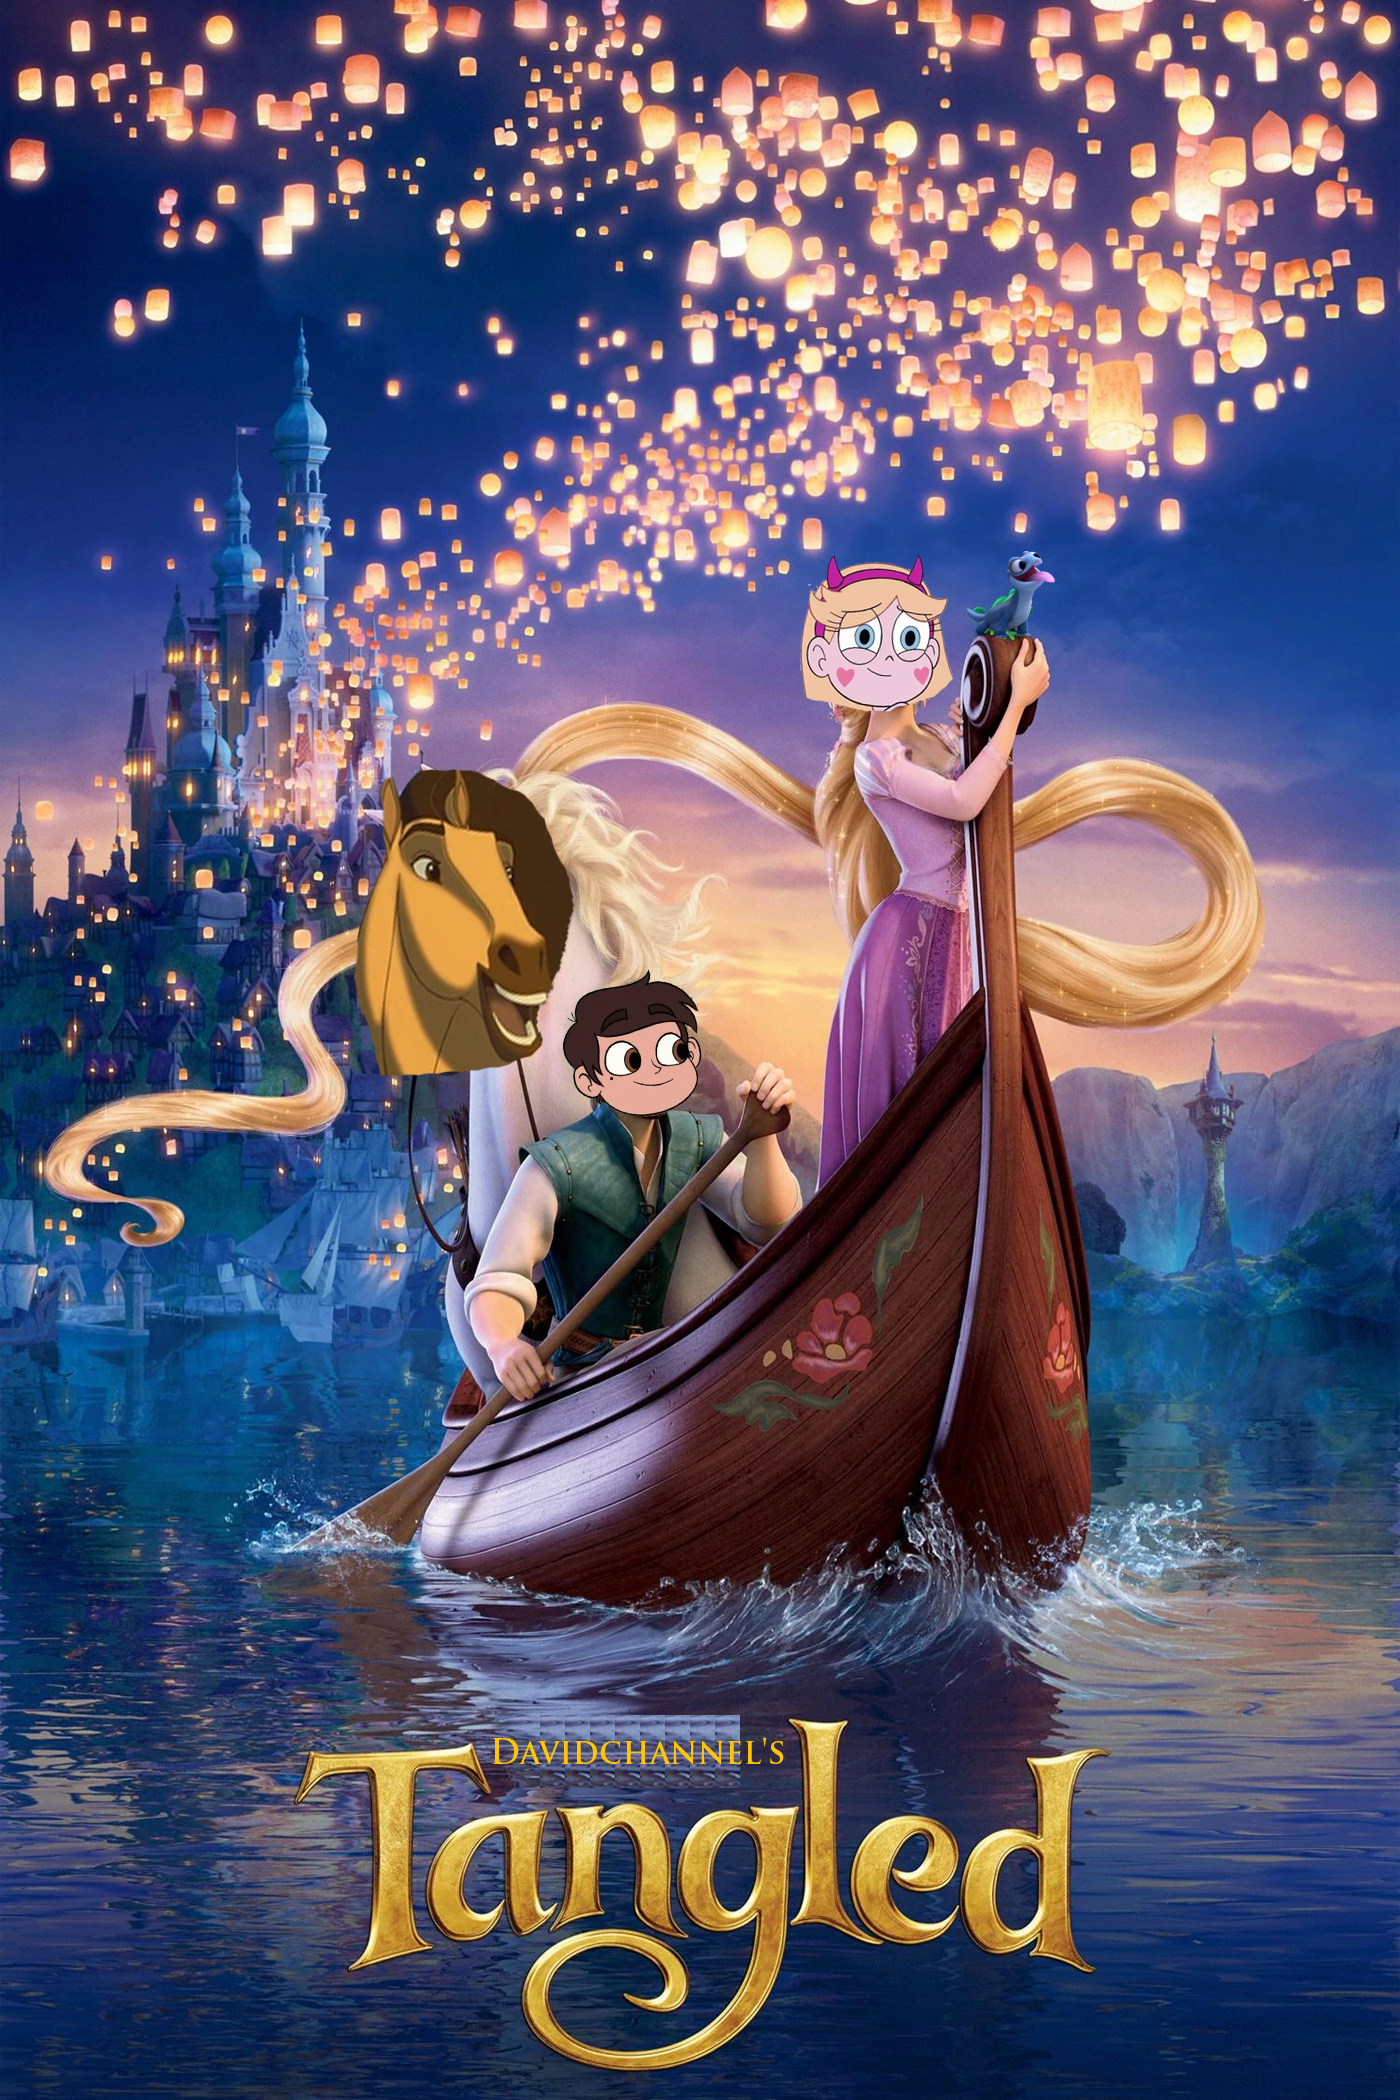 Tangled (Davidchannel's Version)